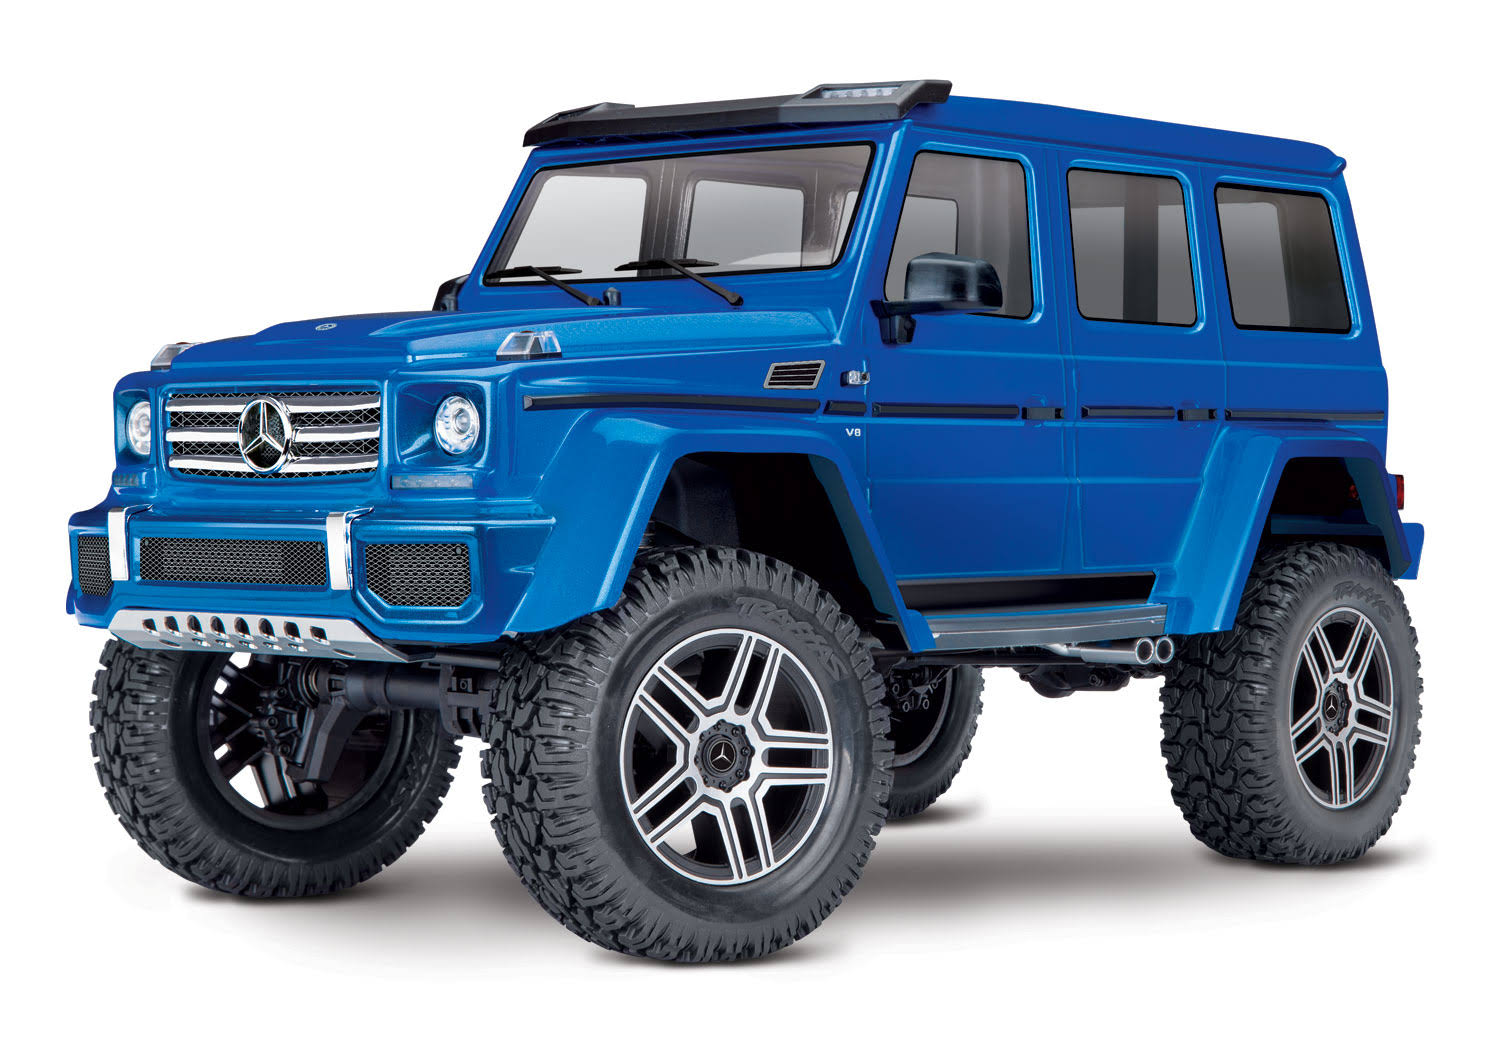 Traxxas TRX-4 Scale and Trail Crawler with Mercedes-Benz G 500